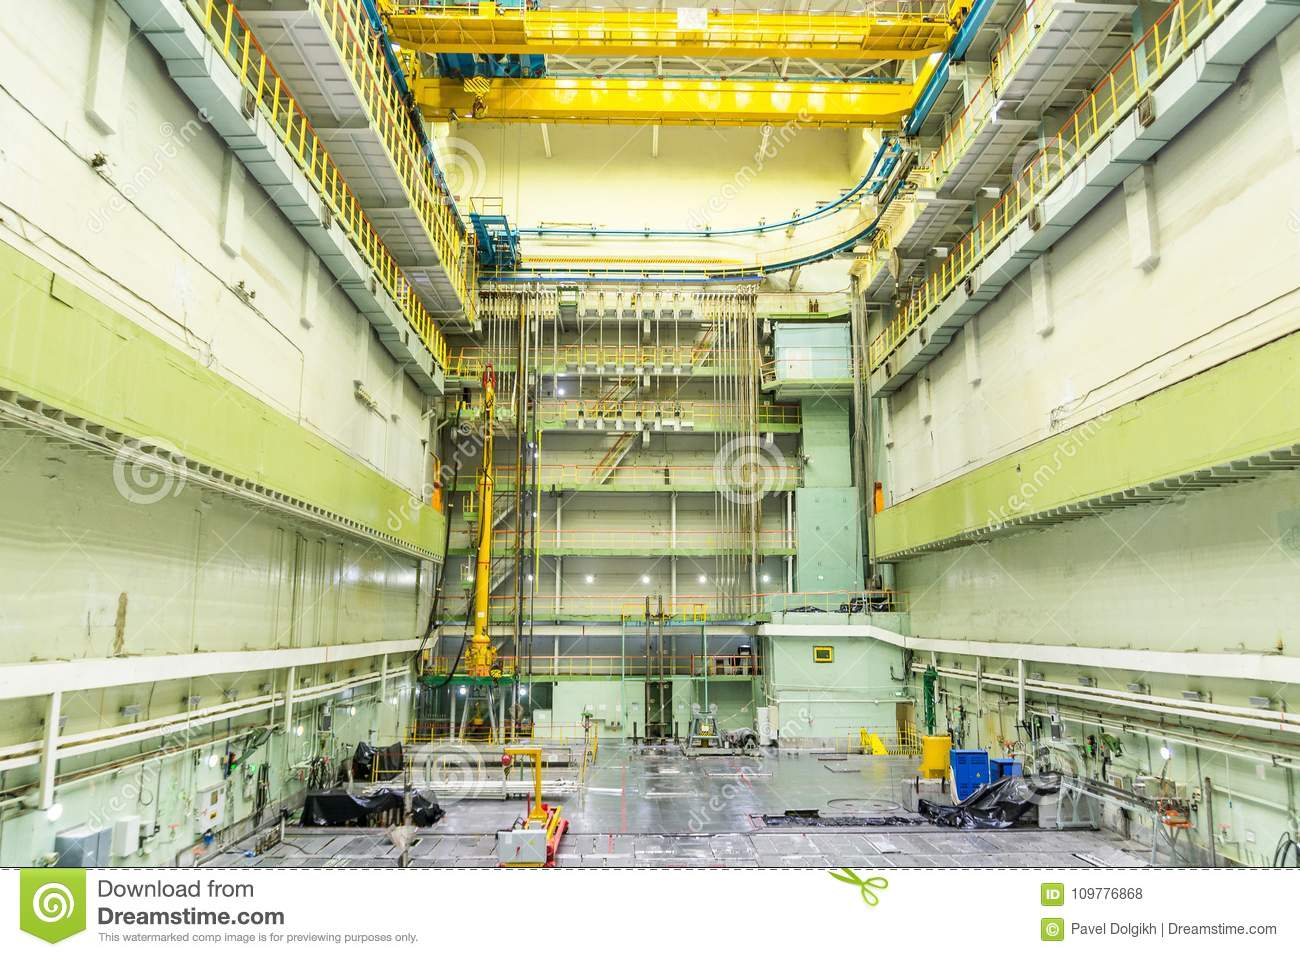 TVEL is a fuel element. Nuclear reactor 24